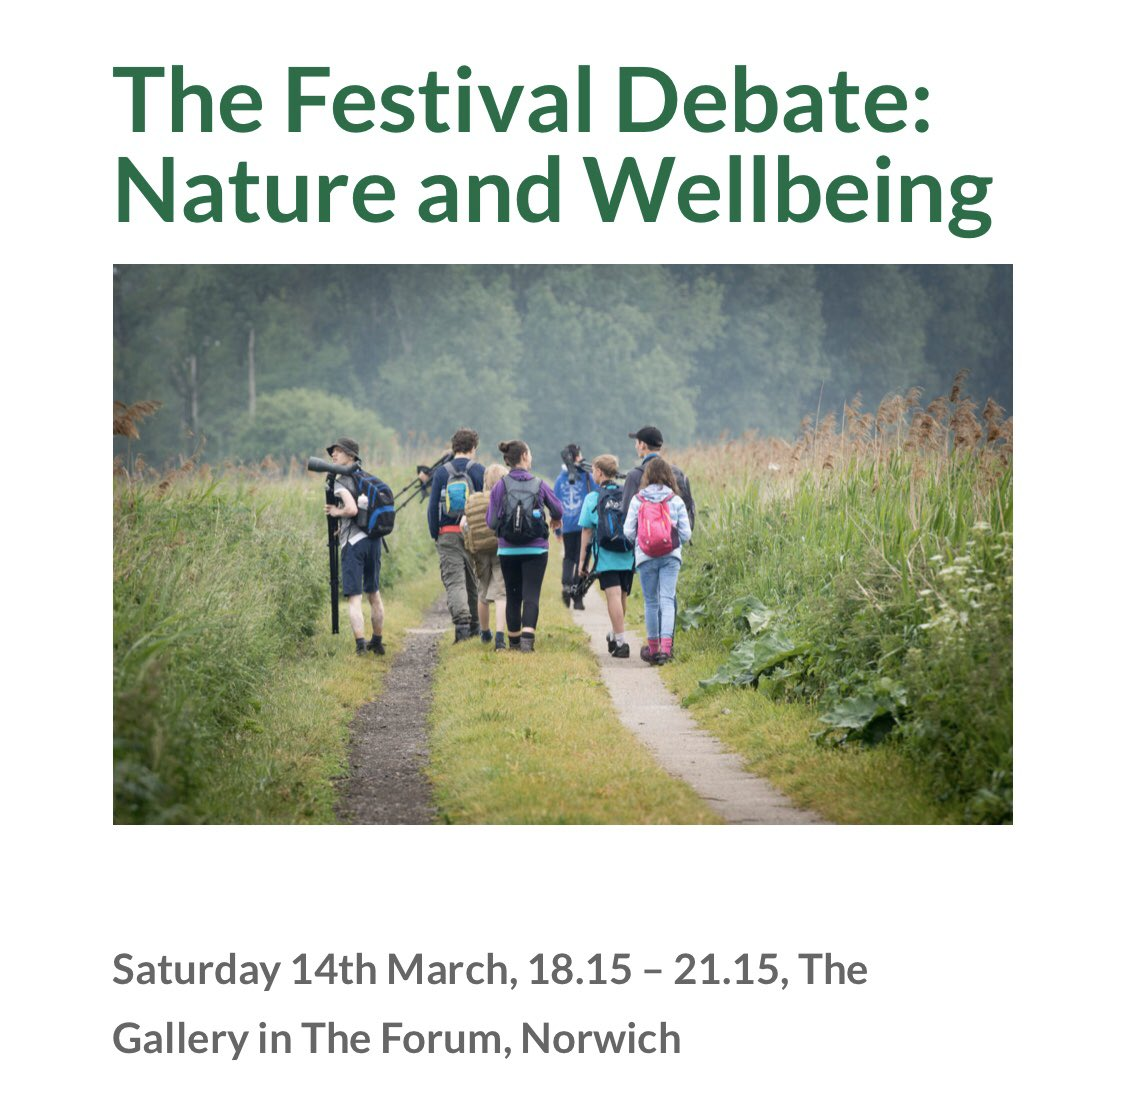 In just over a month, I'll be talking health, wellbeing and nature at @NFOfNature with @patrick_barkham @anitasethi @CaoimheBennett and Joe Harkness. Tickets here >> norfolkfestivalofnature.co.uk/events/the-fes… 🌱🌺🐬🦊🐝